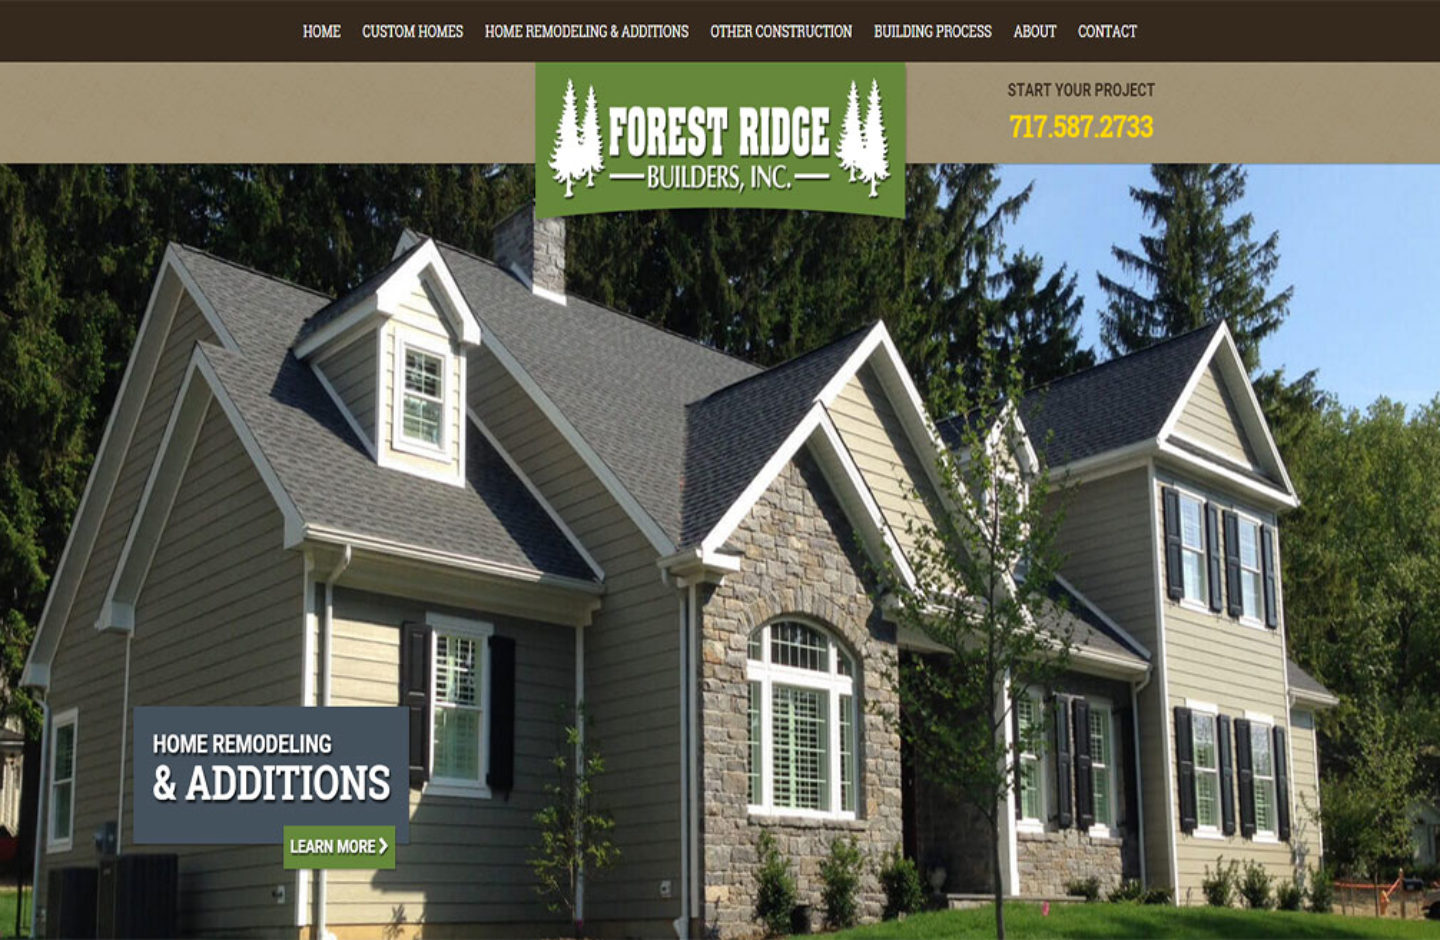 Forest Ridge Builders